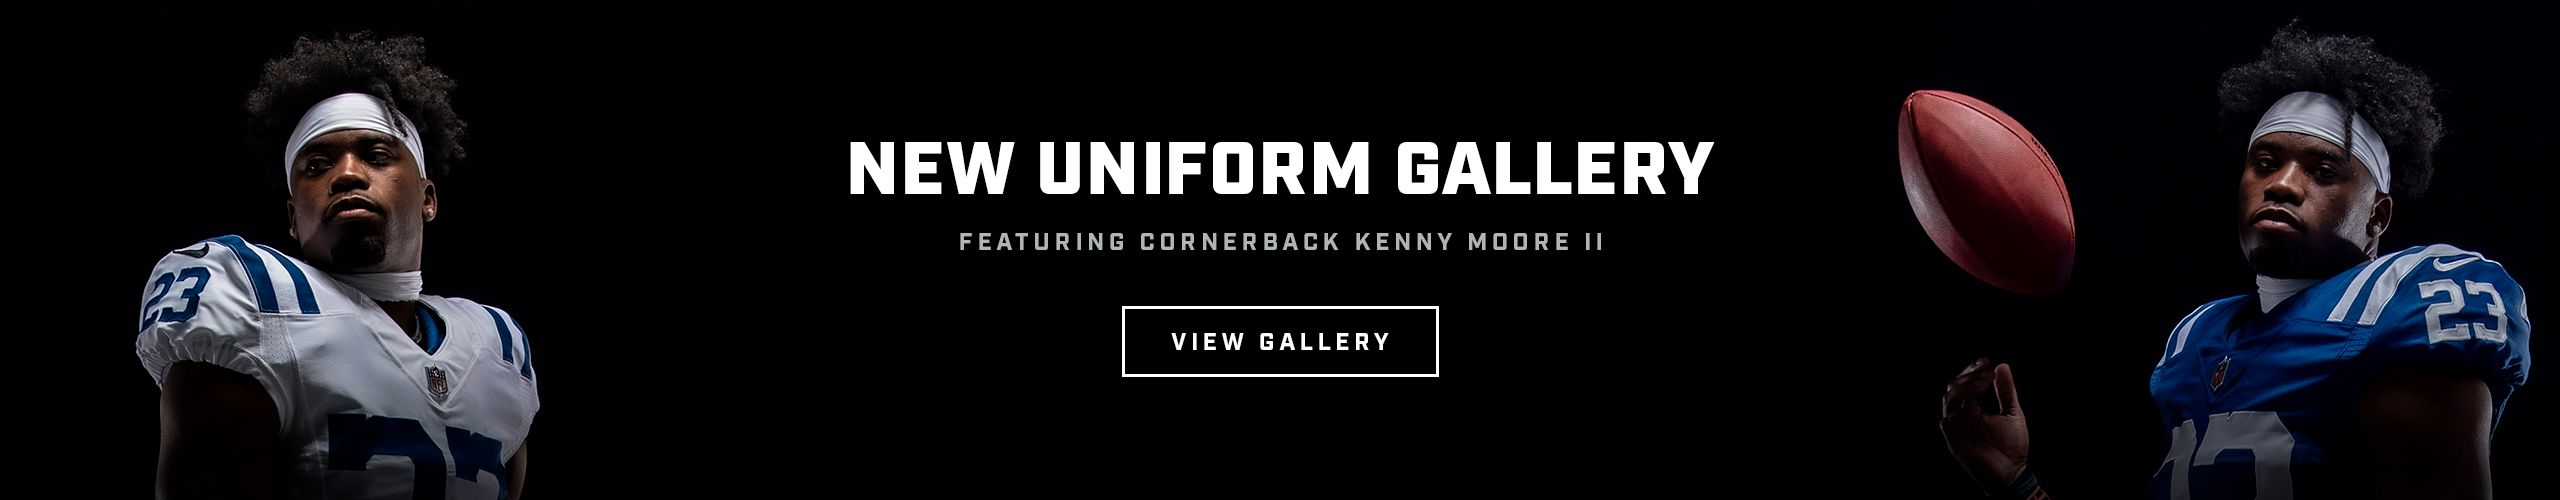 Click to view a gallery of the new uniform, featuring Kenny Moore II